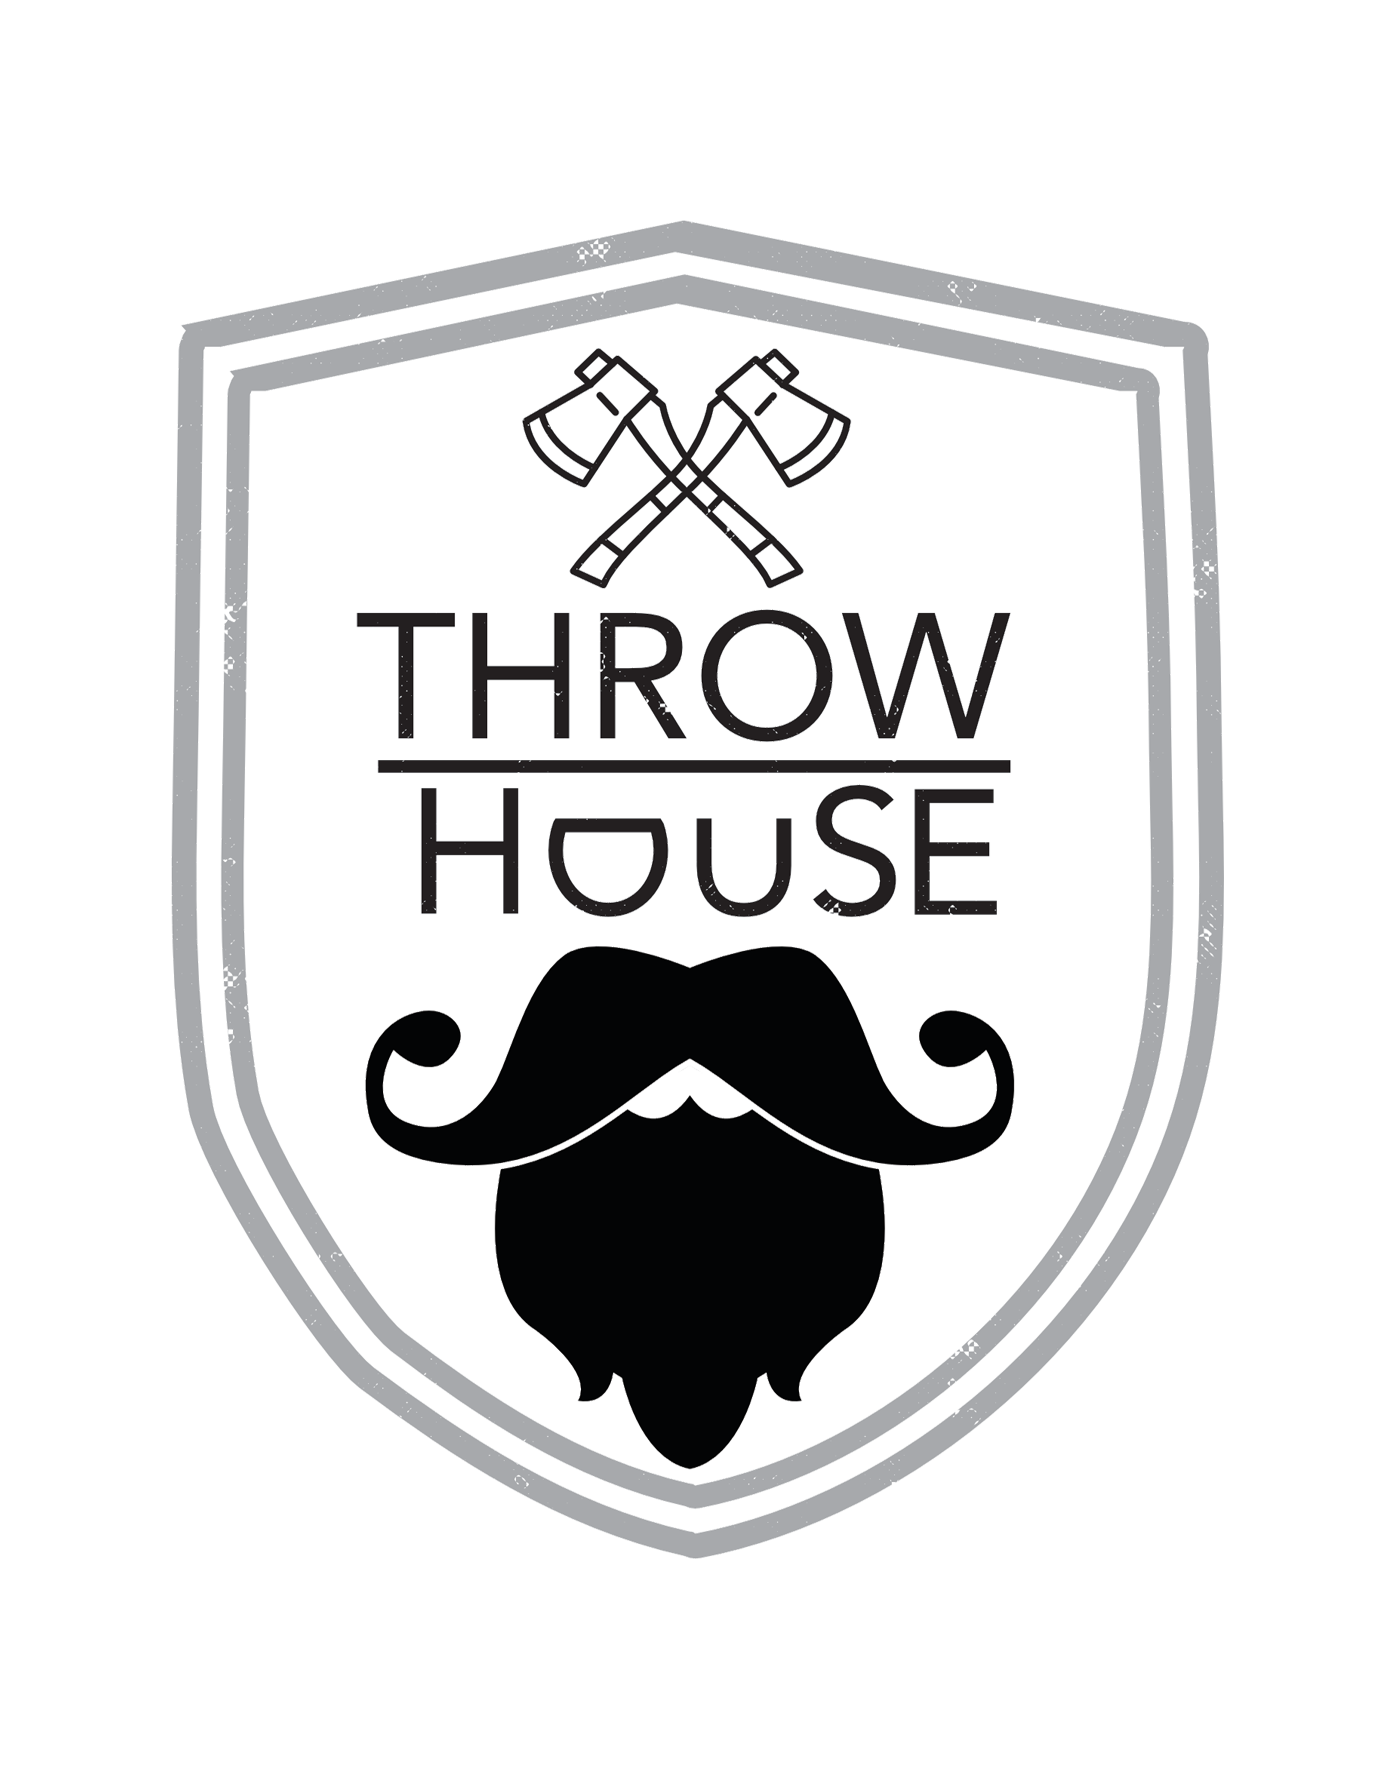 Throw House Axe Throwing